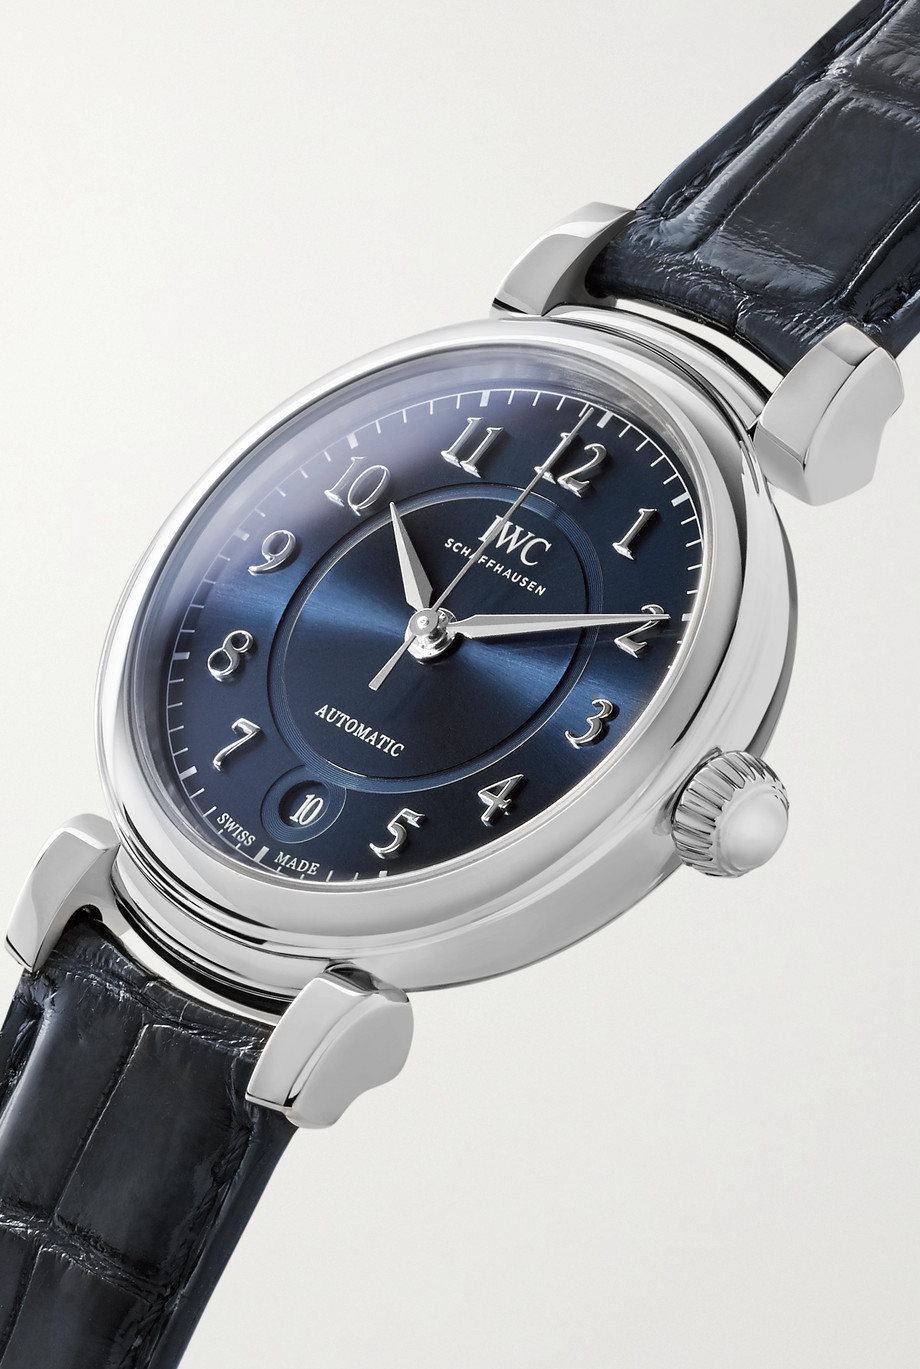 IWC SCHAFFHAUSEN Da Vinci Automatic 36mm stainless steel and alligator watch